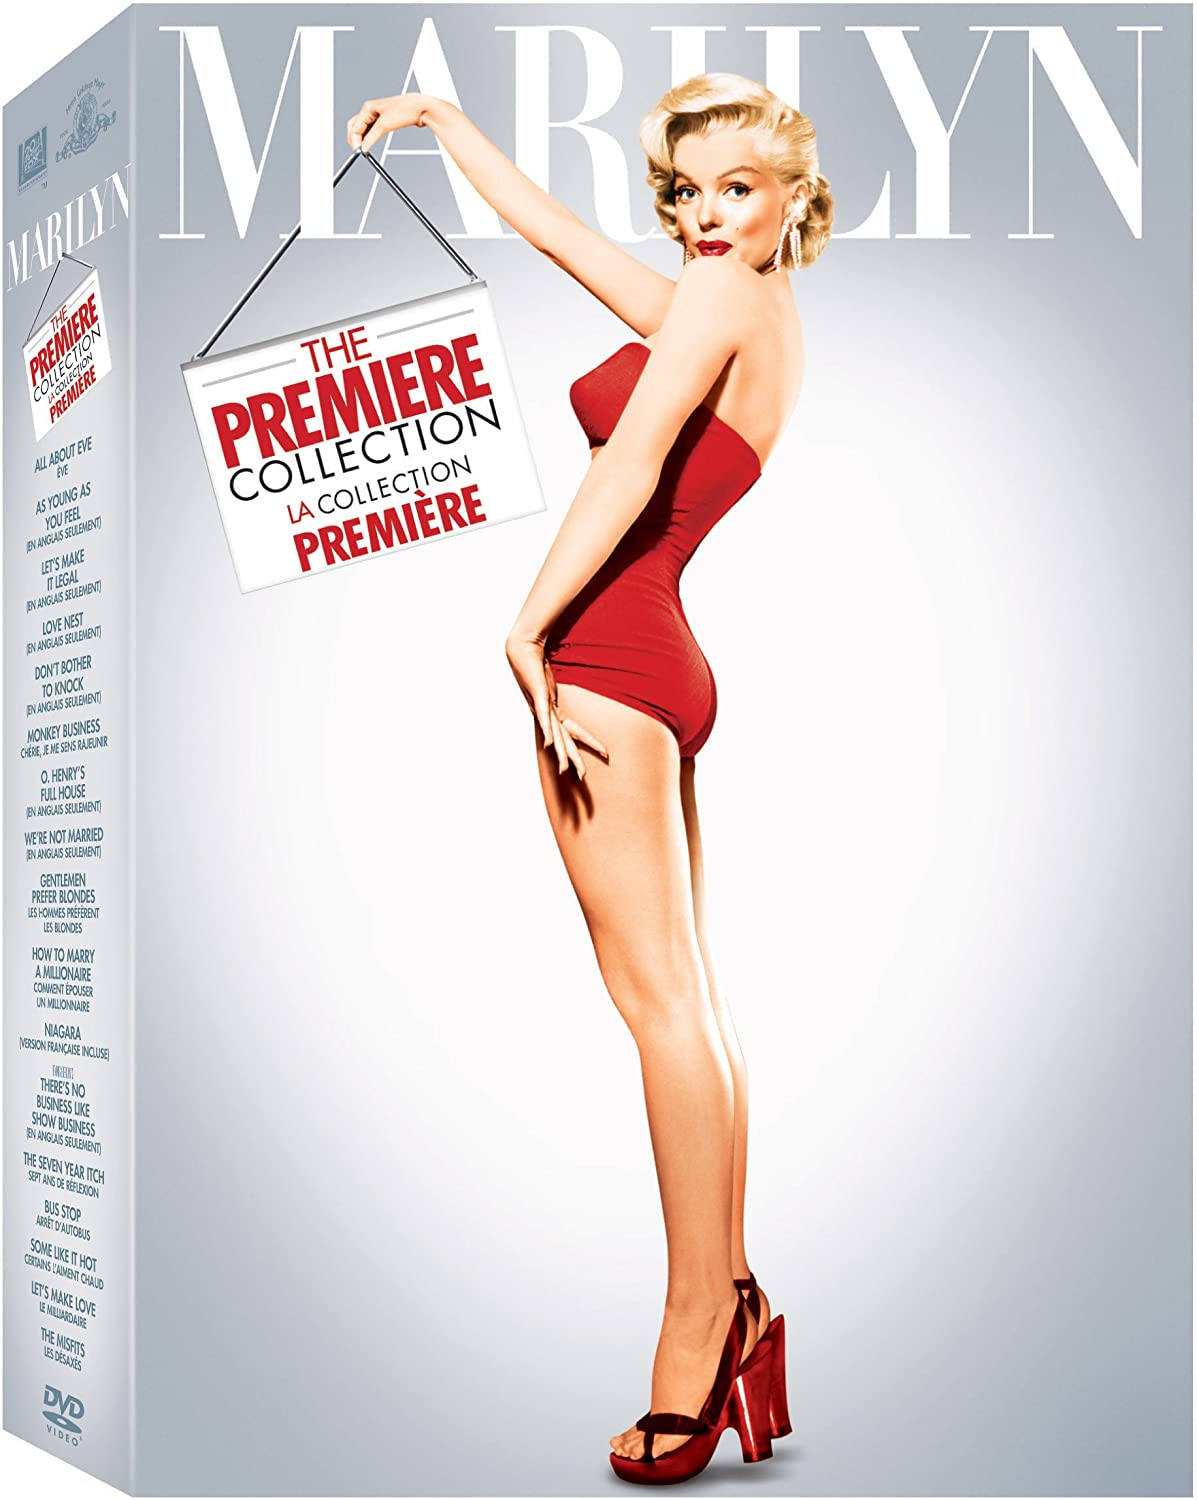 Marilyn: The Premiere Collection (Bilingual): Amazon.ca: Marilyn ...